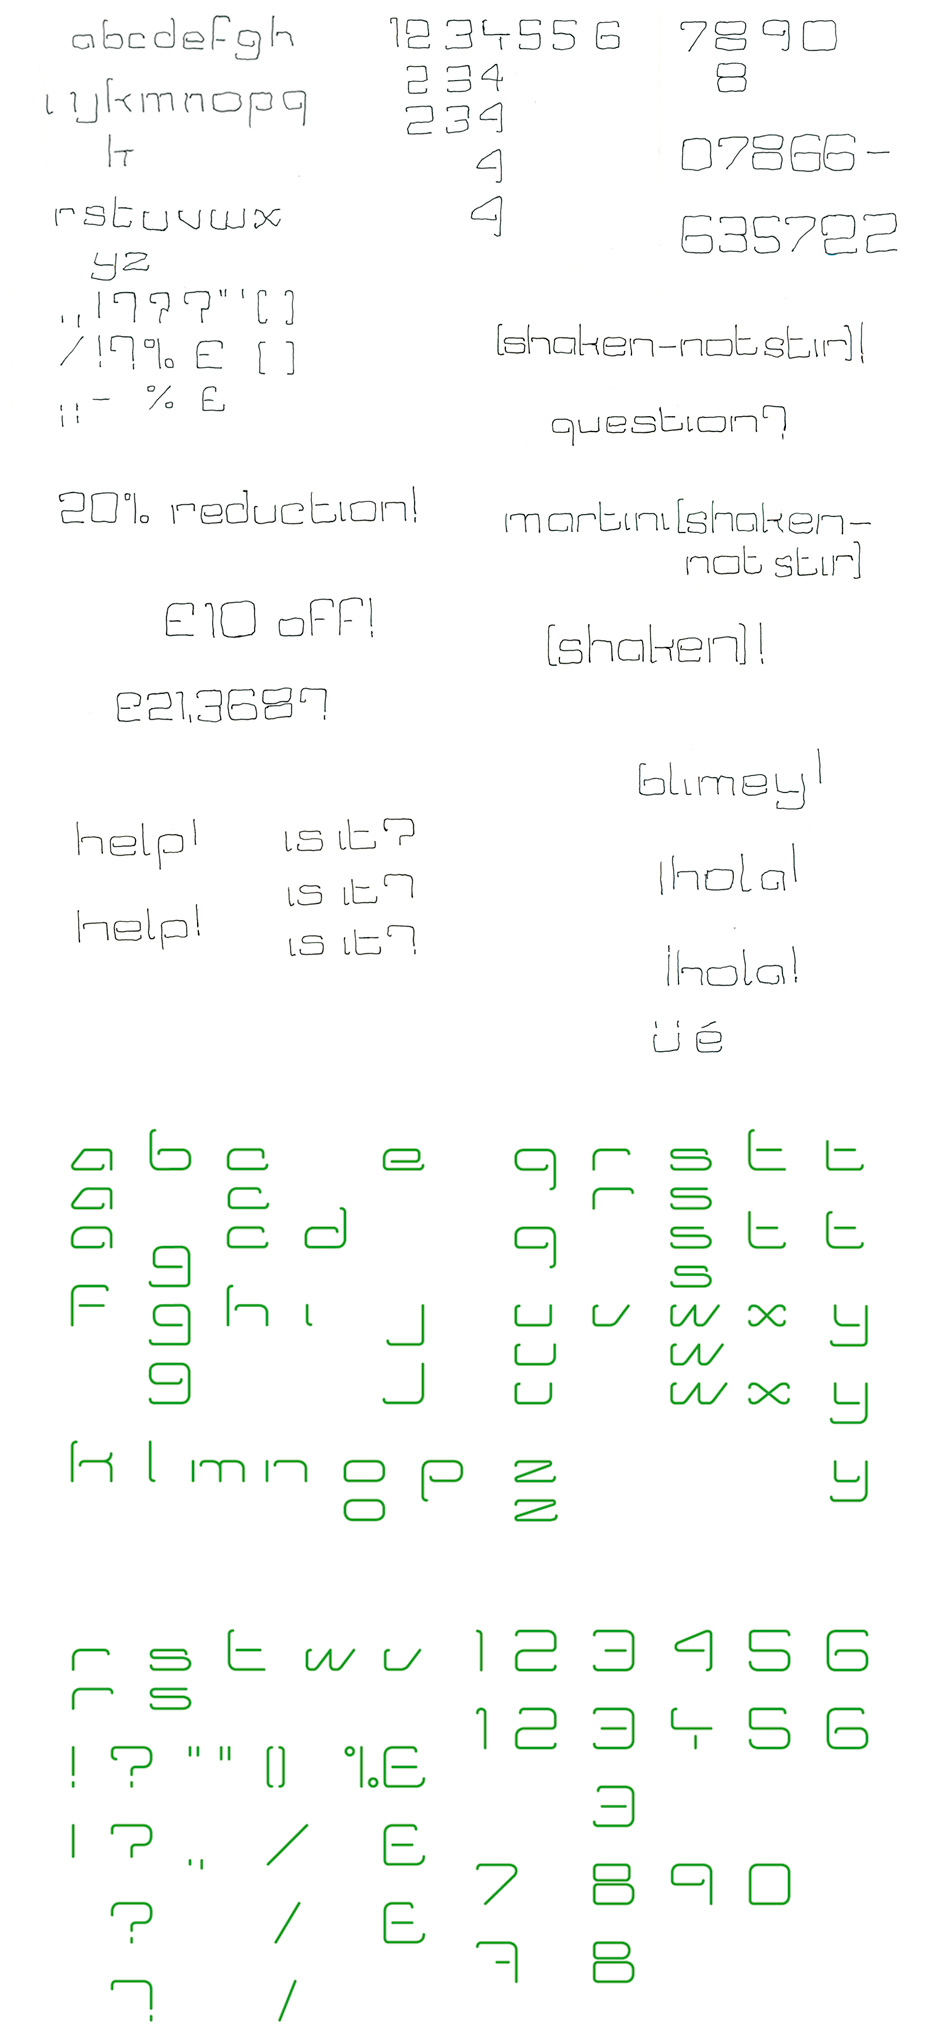 untitled_font_no1_concepts_w